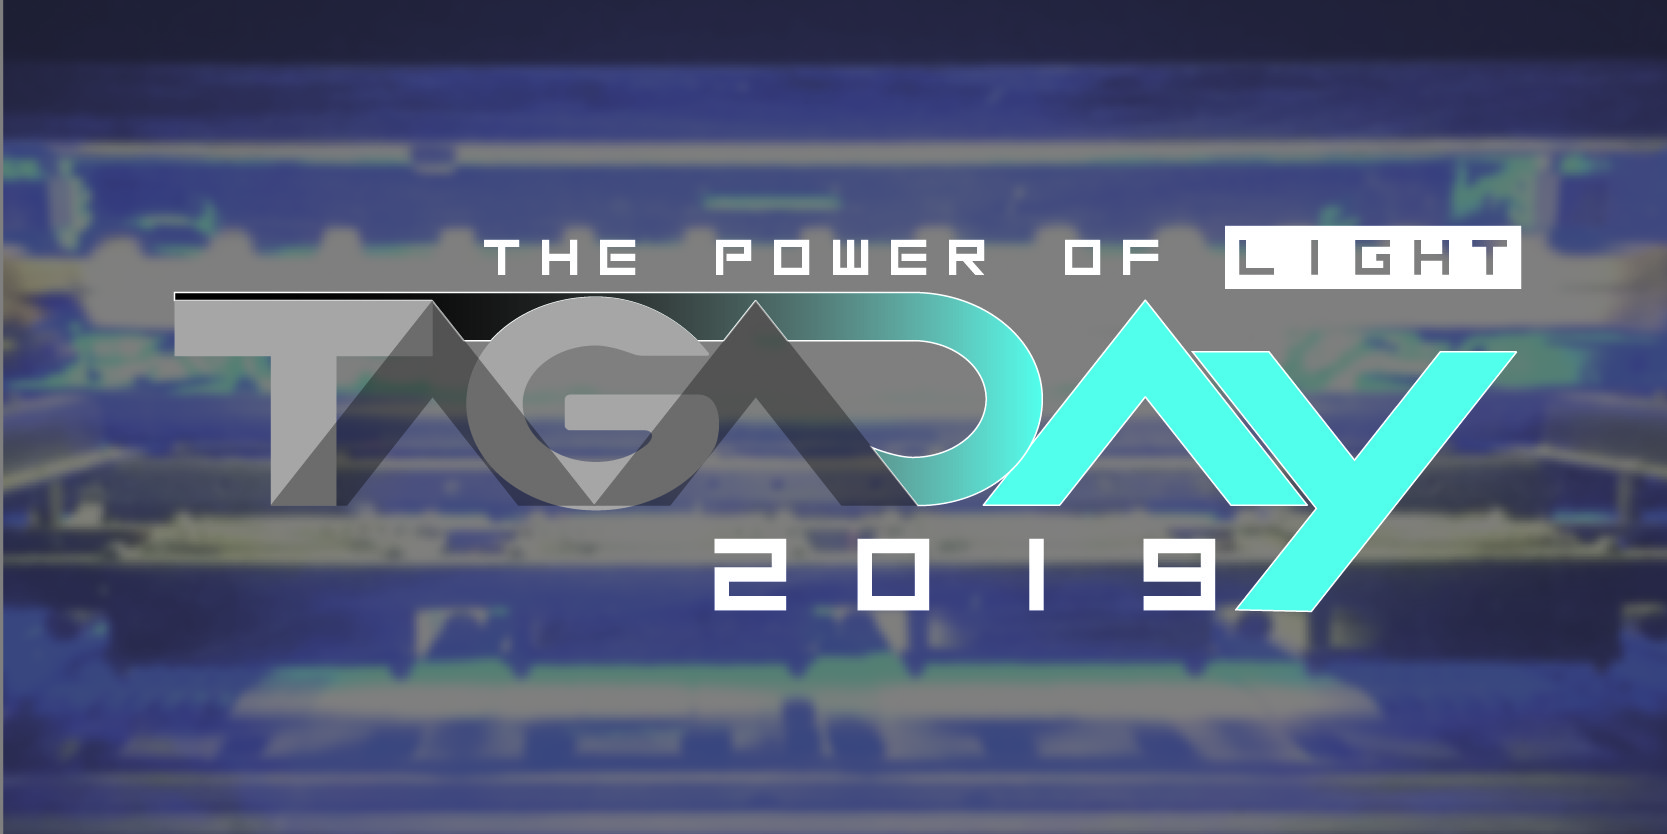 TAGA Day 2019 – The power of light